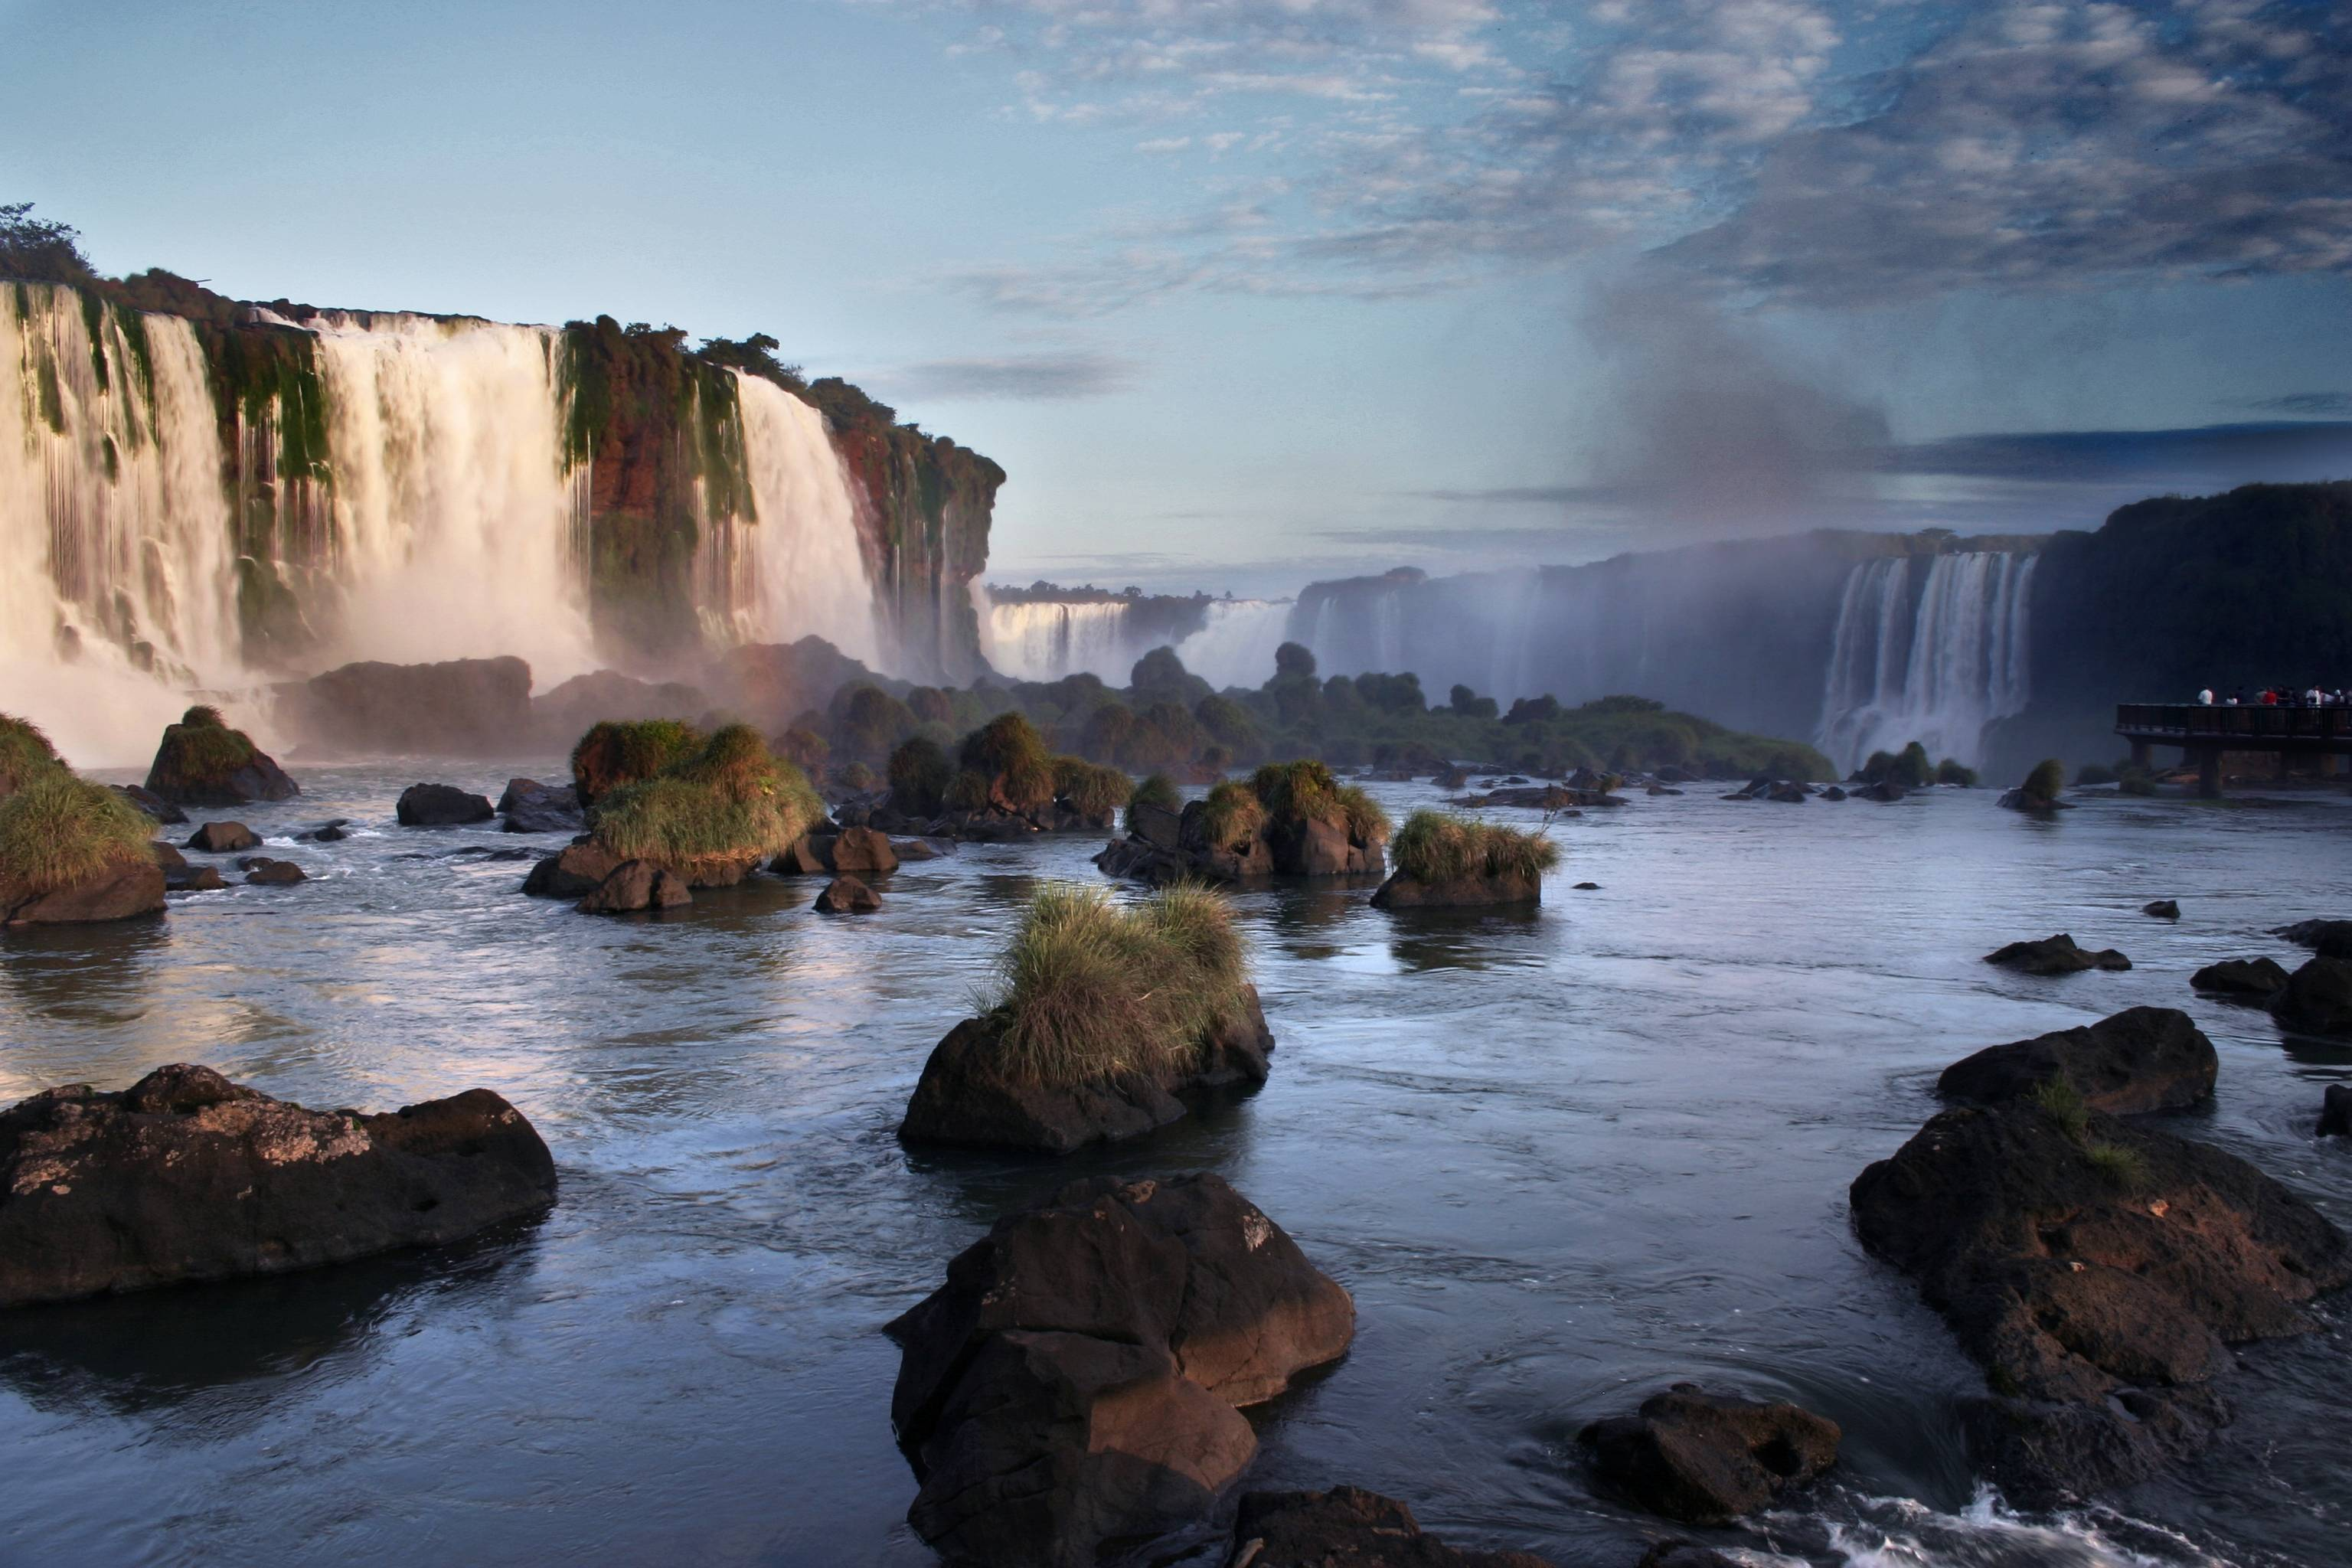 Brazil Landscape Wallpapers - Page 45